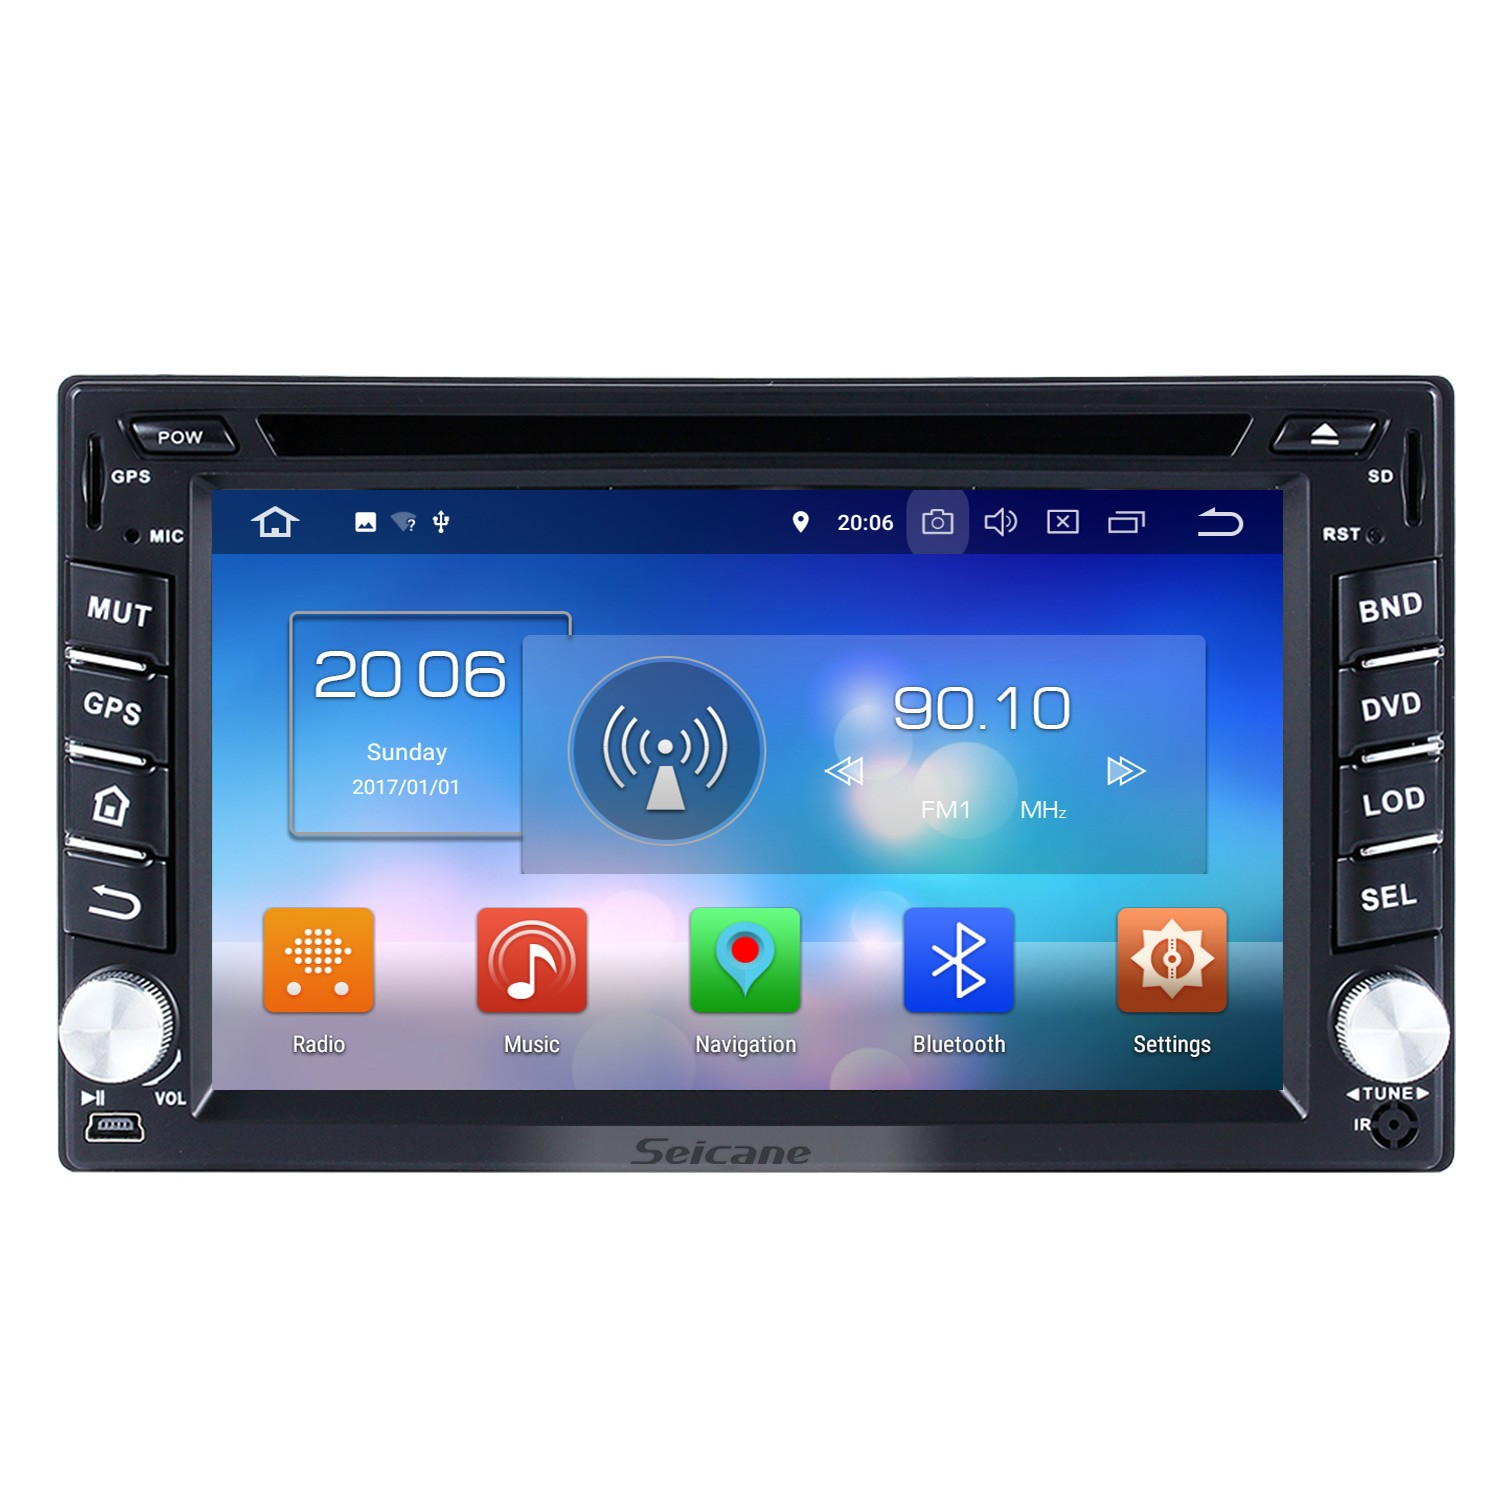 hight resolution of 2001 2010 hyundai matrix android 8 0 radio dvd player gps navigation system hd touch screen mirror